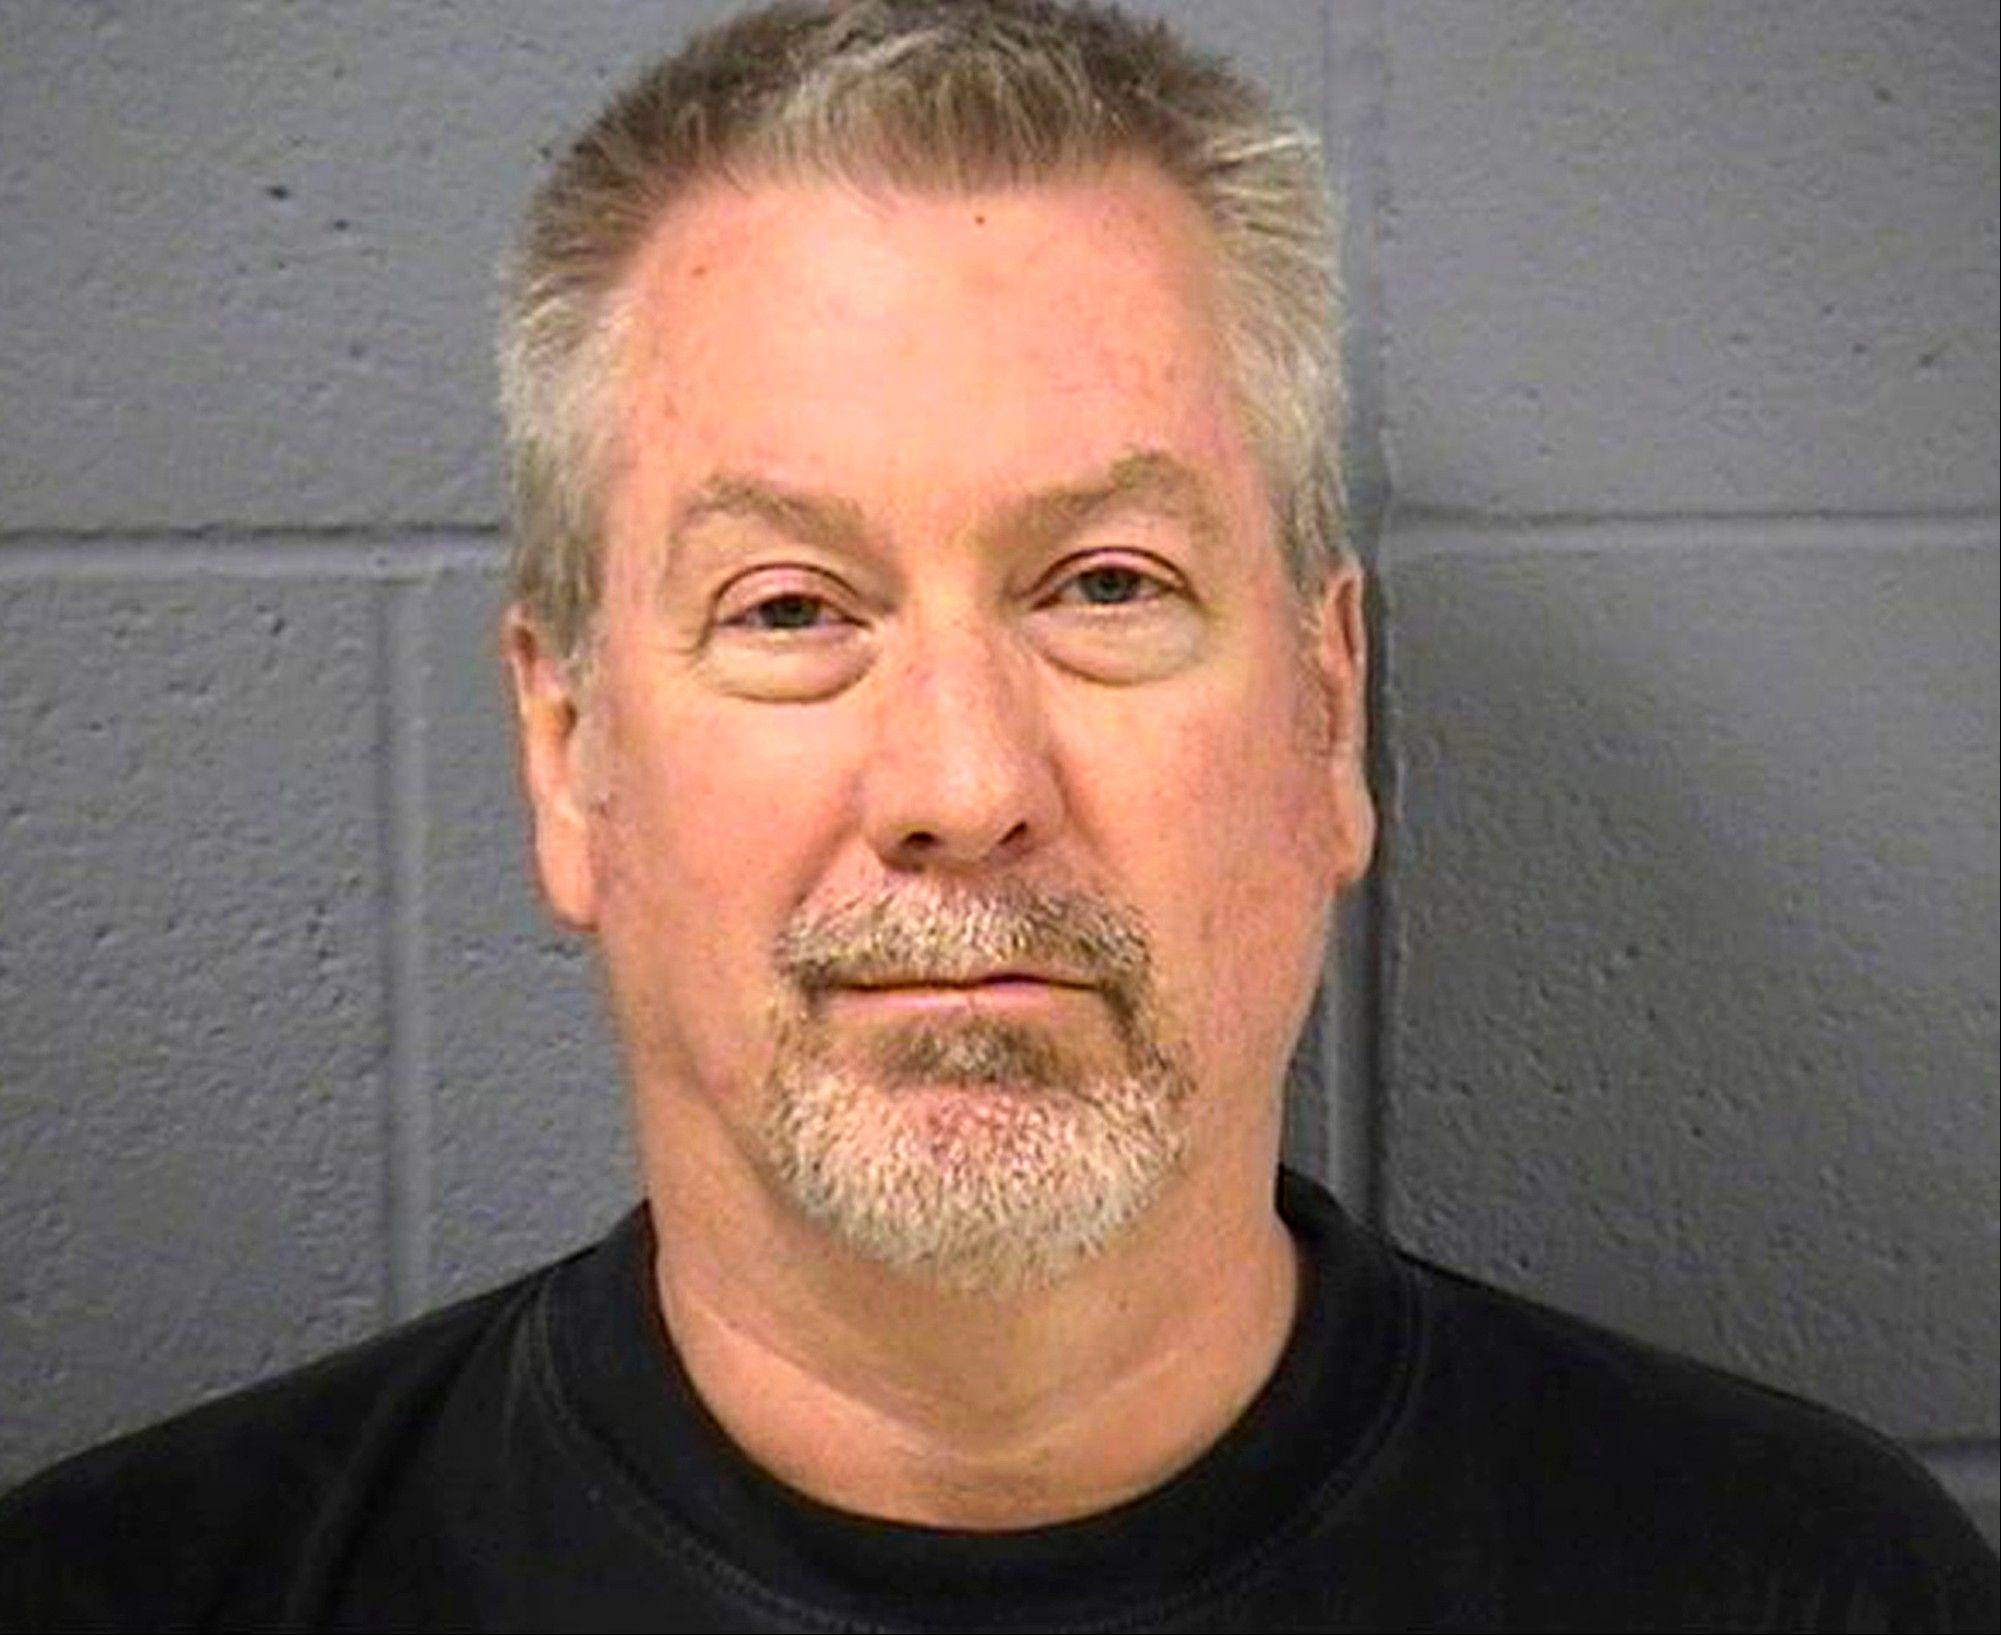 Former Bolingbrook police officer Drew Peterson is currently serving a 38-year term for the murder of his third wife, Kathleeen Savio.